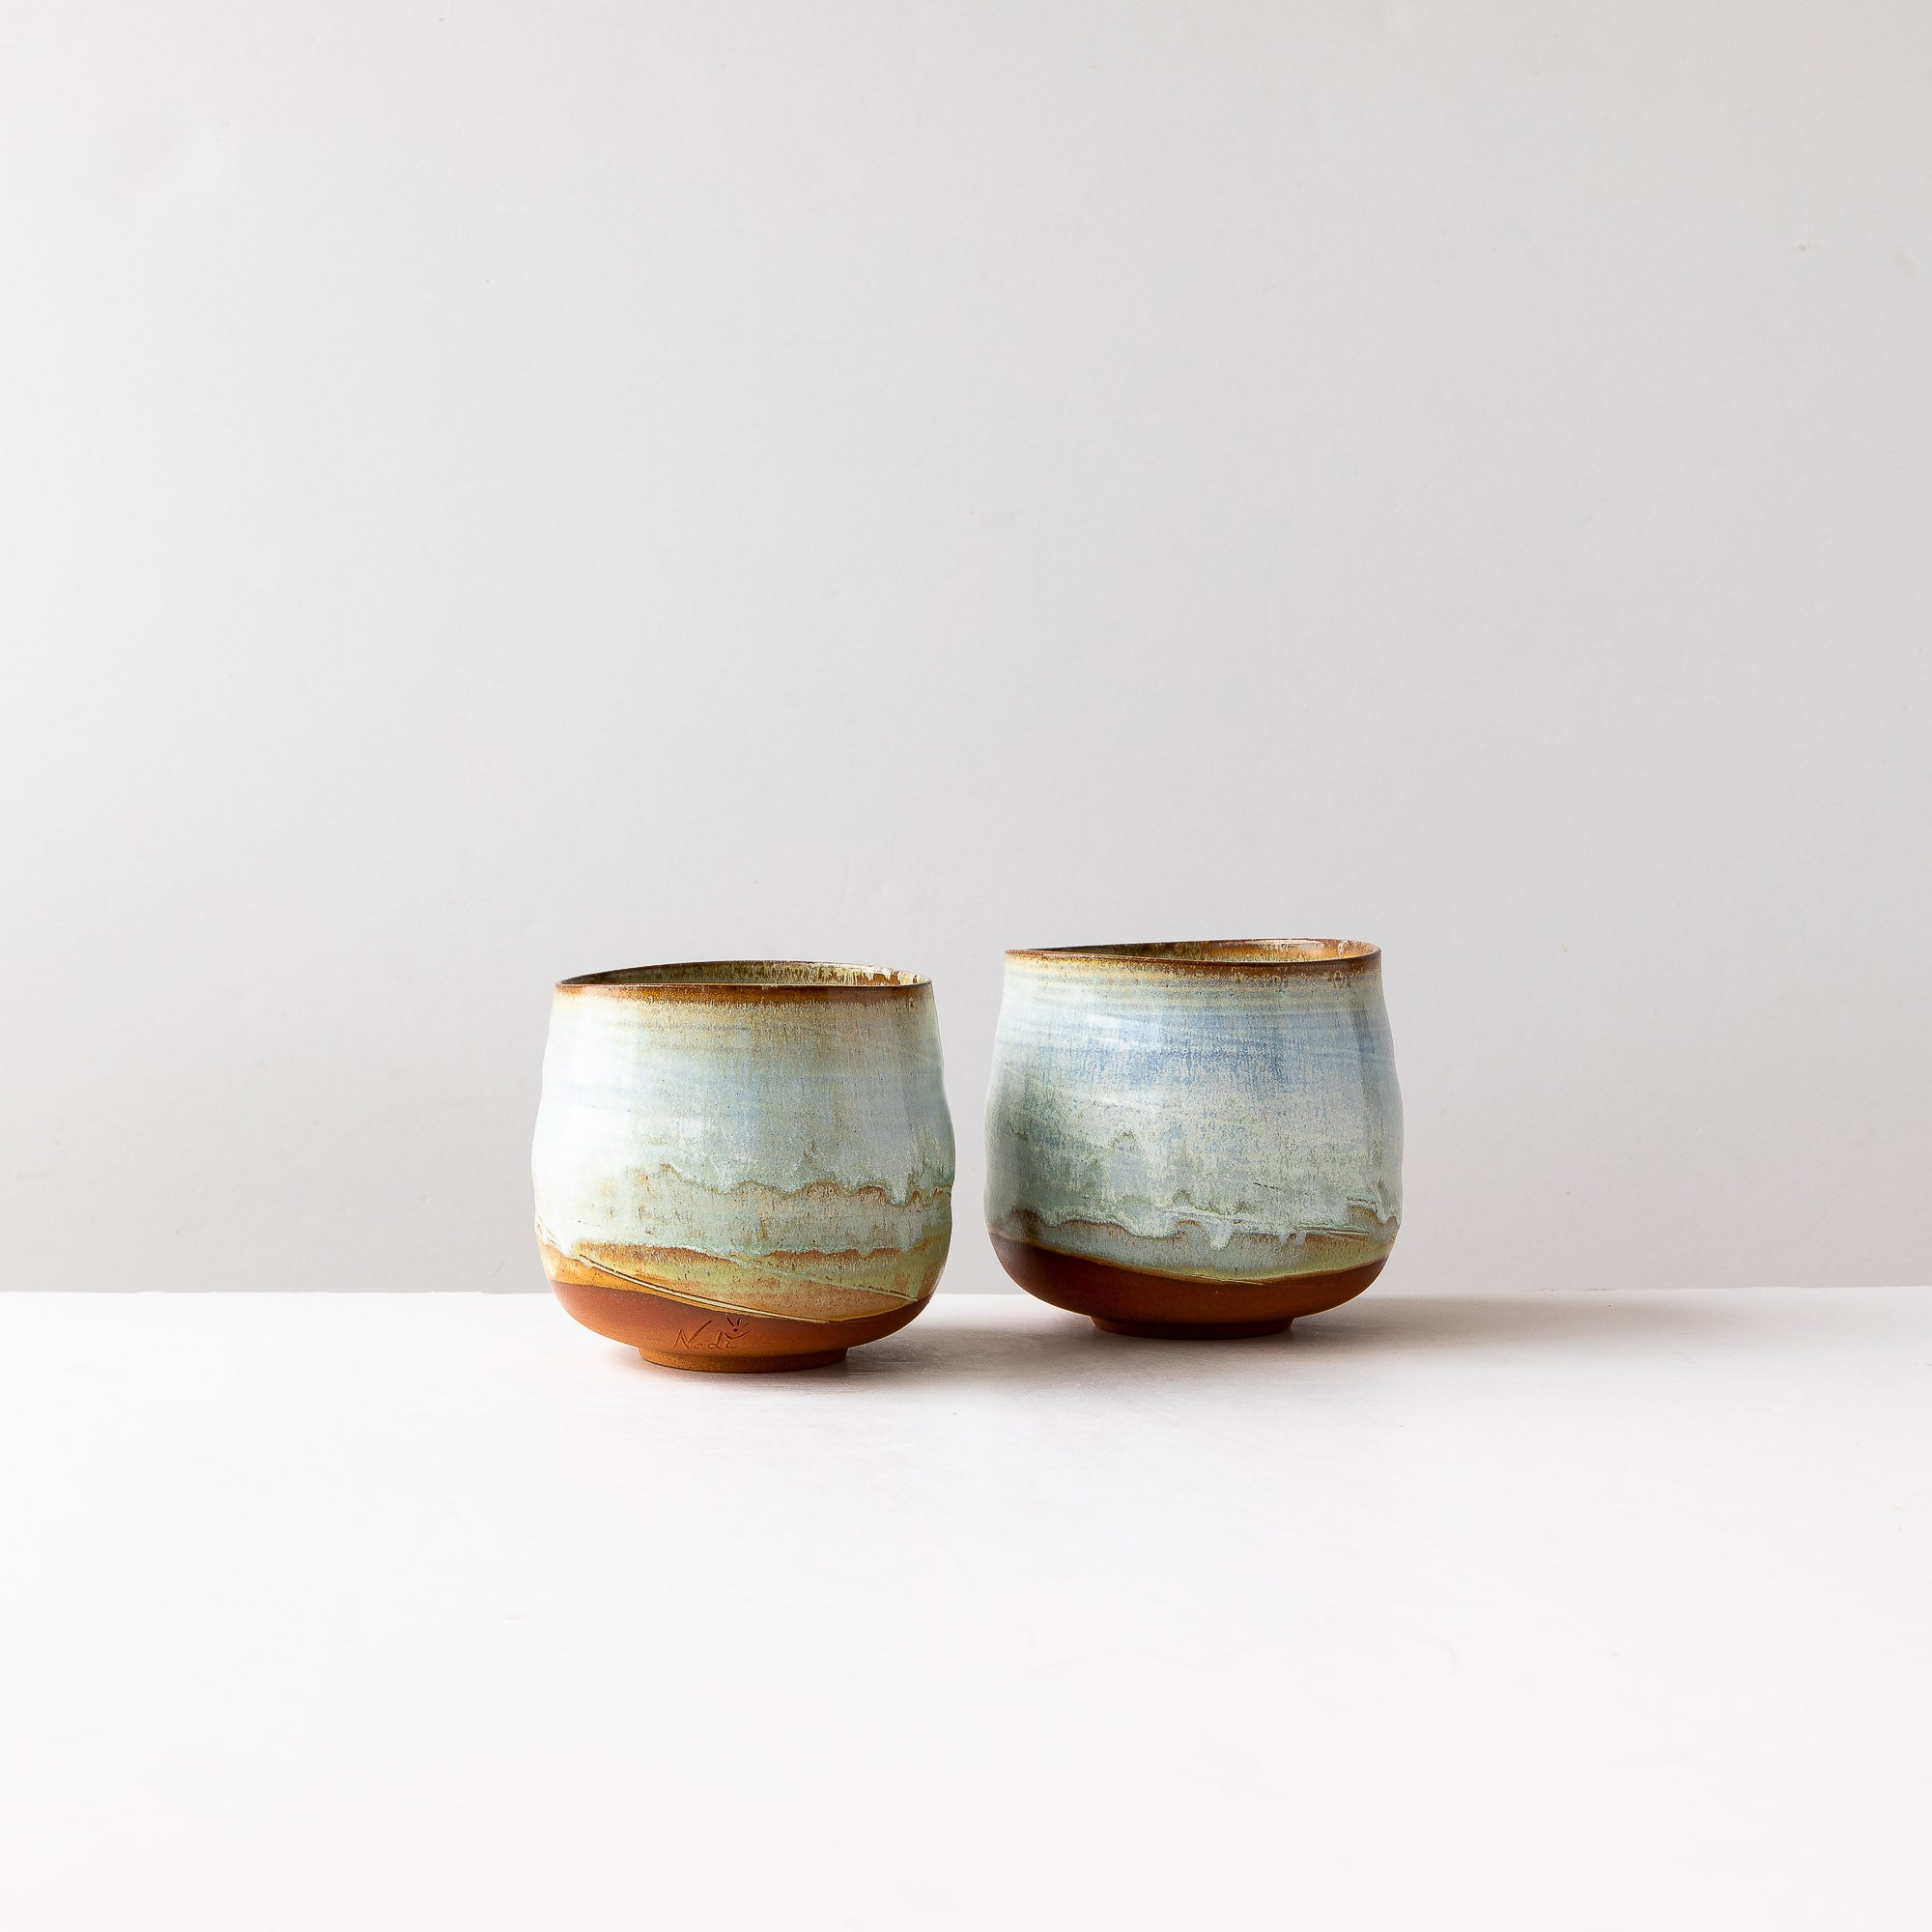 Two Large Tumblers in Red Stoneware & Turquoise Glaze - Sold by Chic & Basta